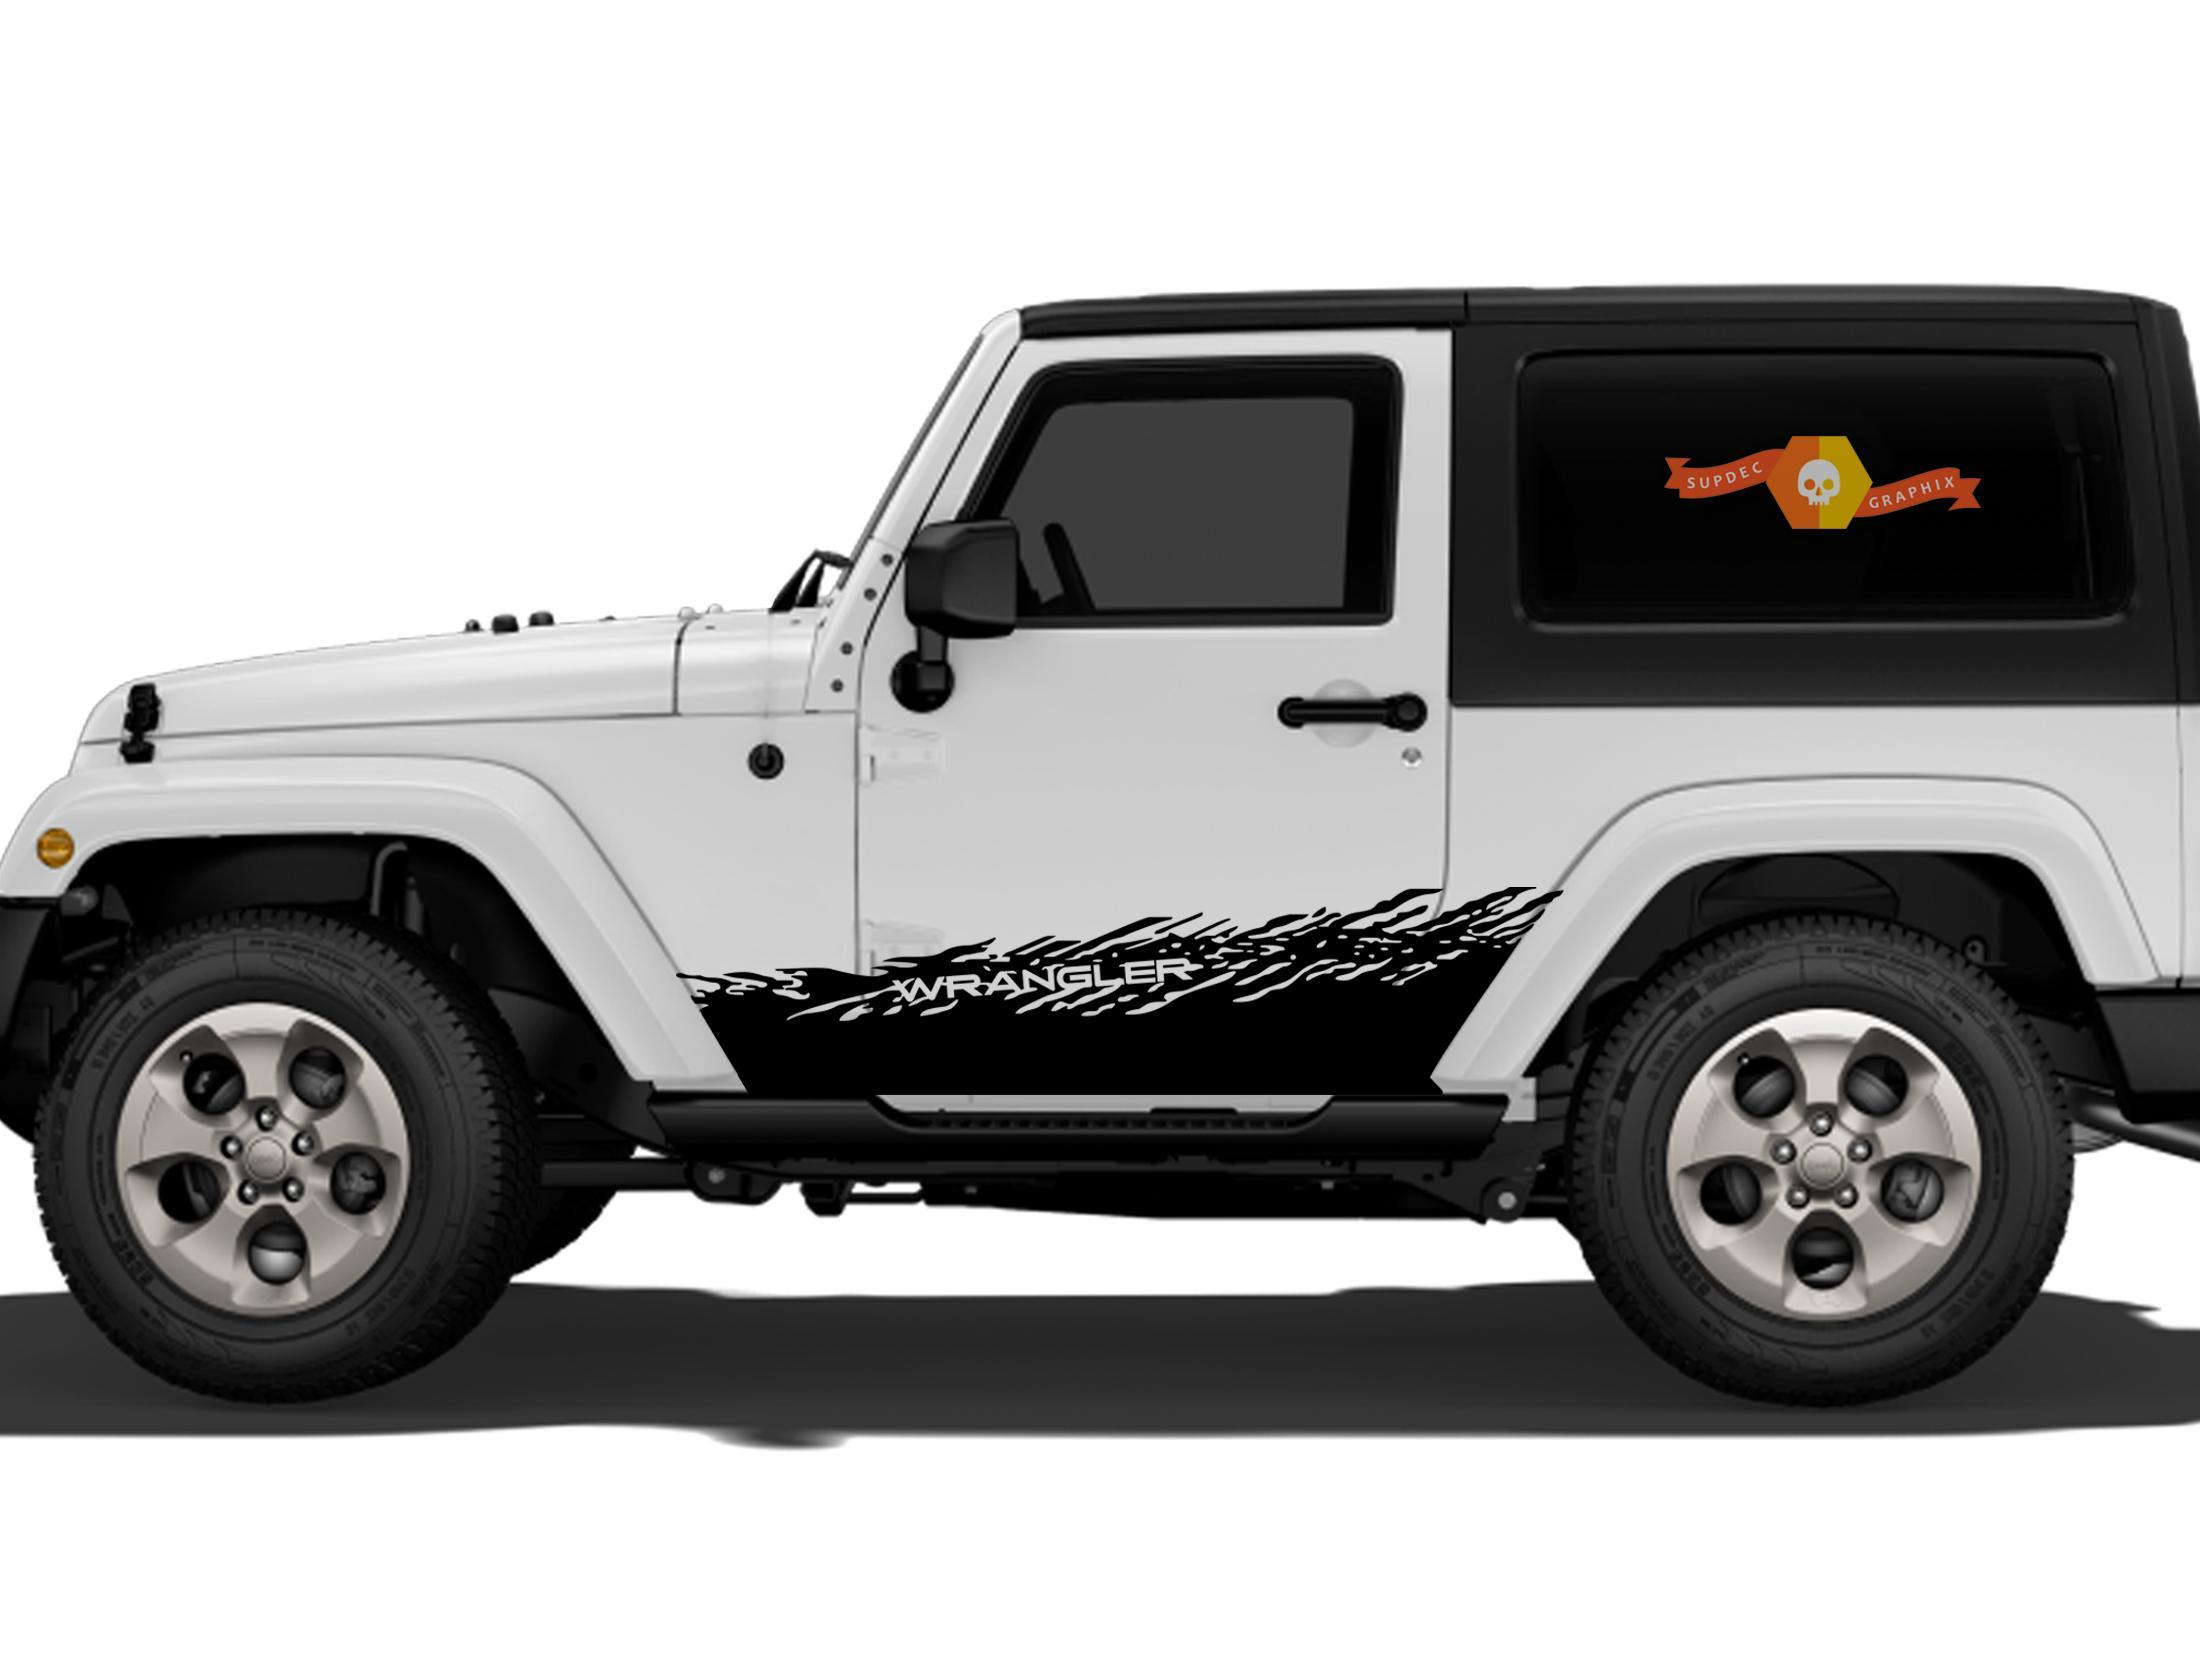 Product: JEEP Decal Sticker splash side rocker door